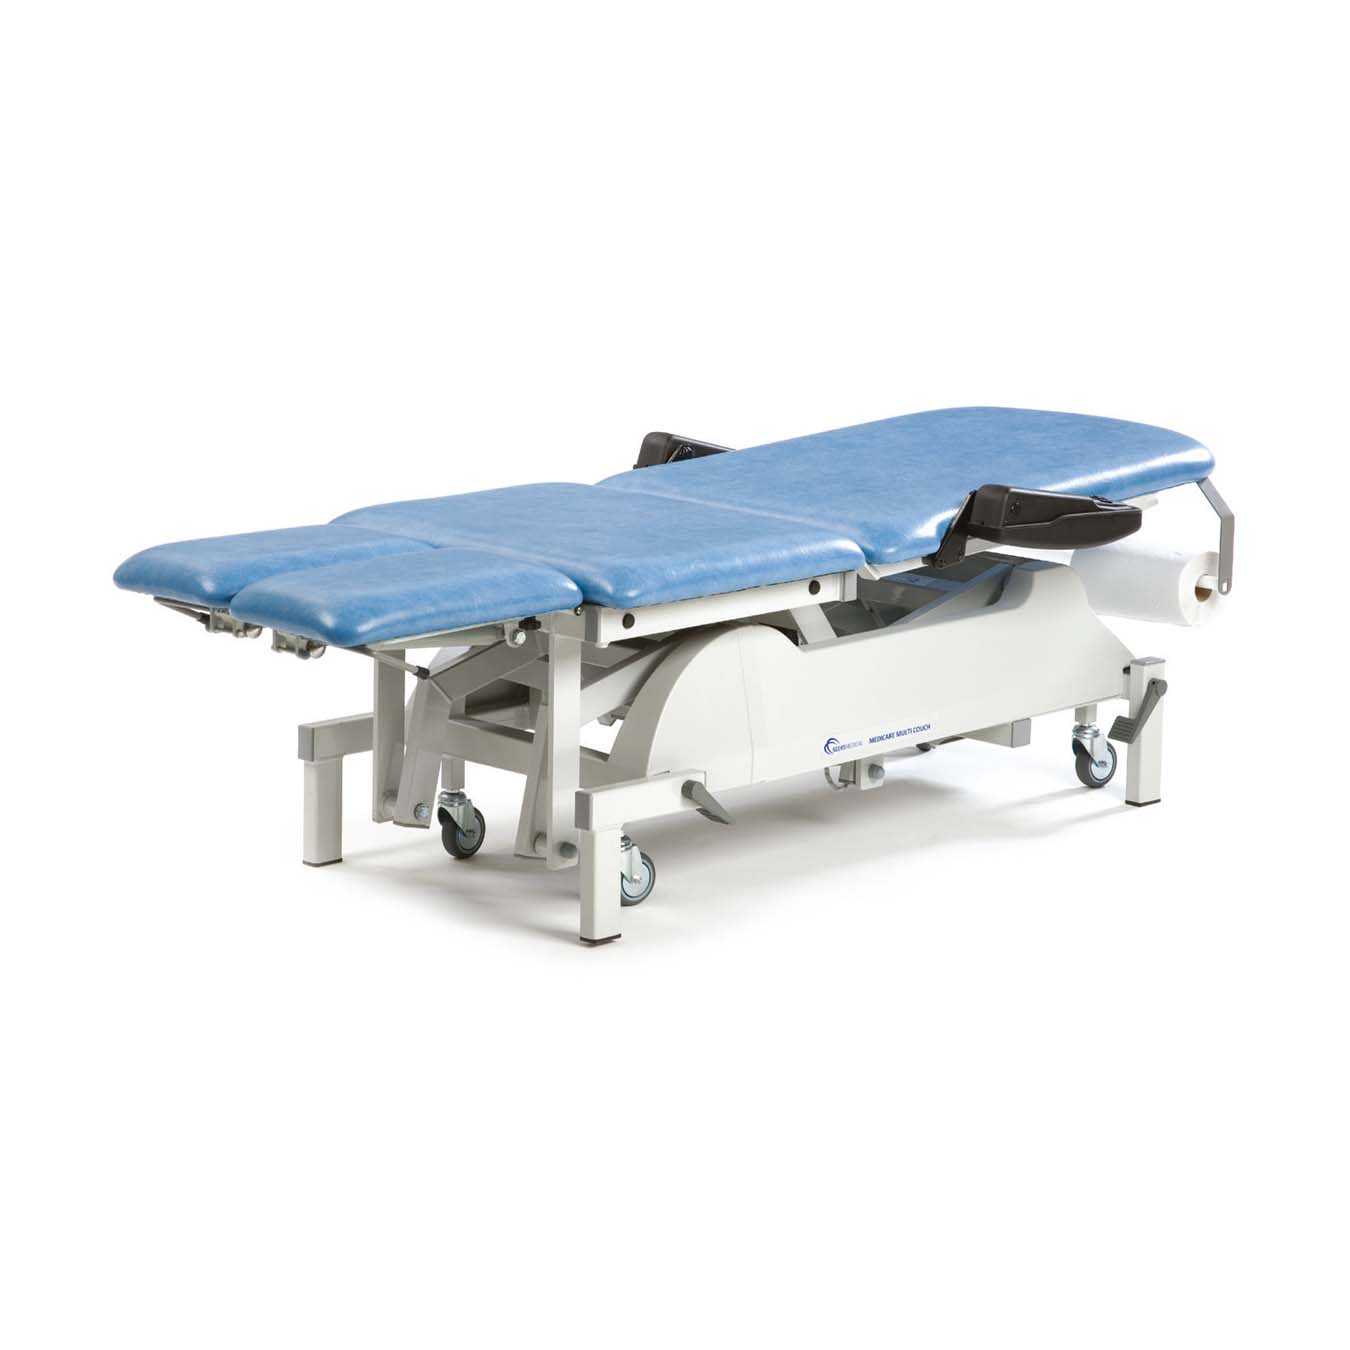 SM0575_2_Seers-Medicare-Multi-Couch-Dual-Footrest_1